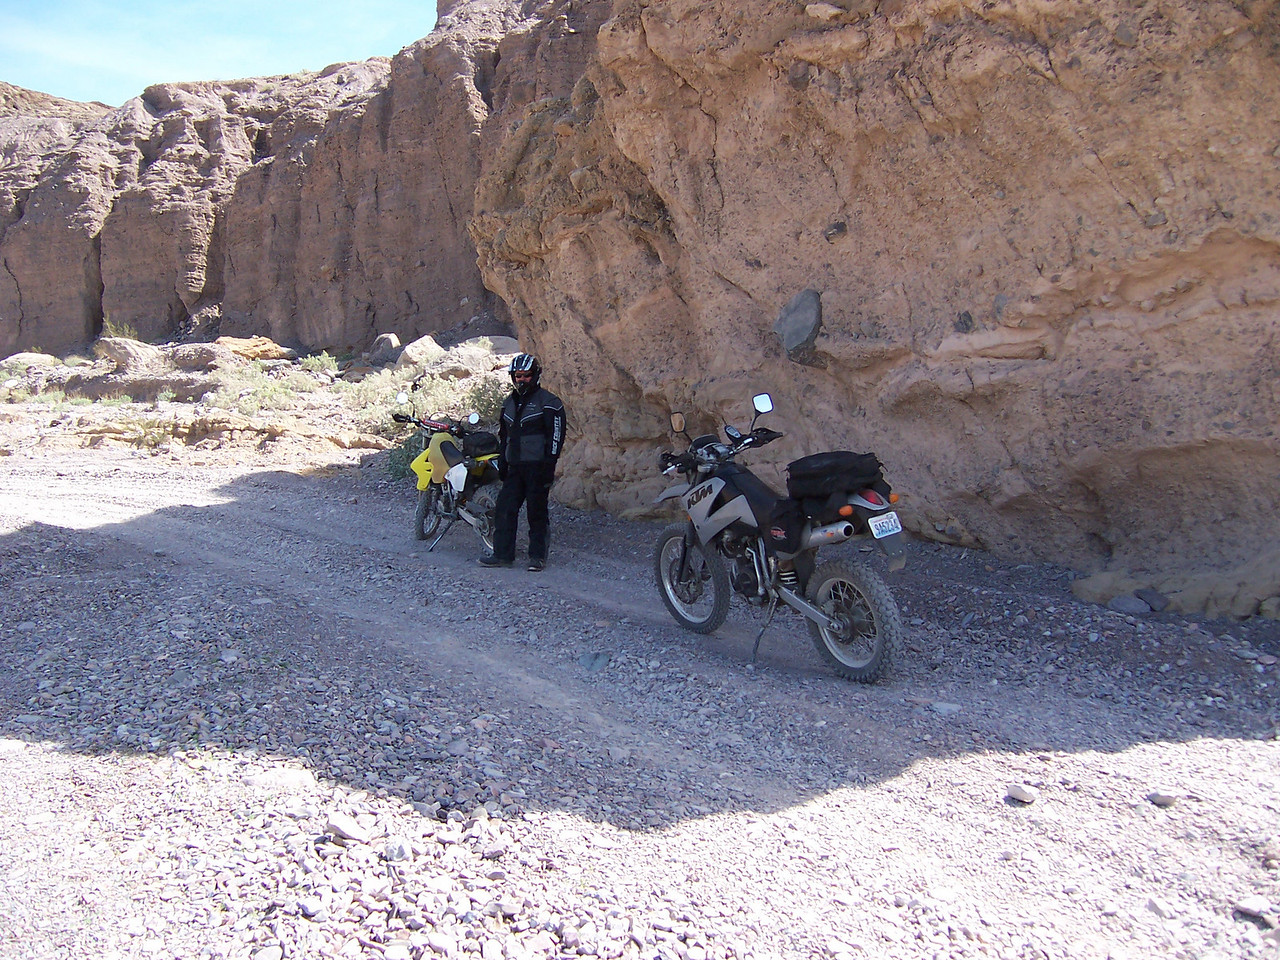 First thing the gang wanted to ride was Echo Canyon. So we followed along. Here is Paul in Echo Canyon.